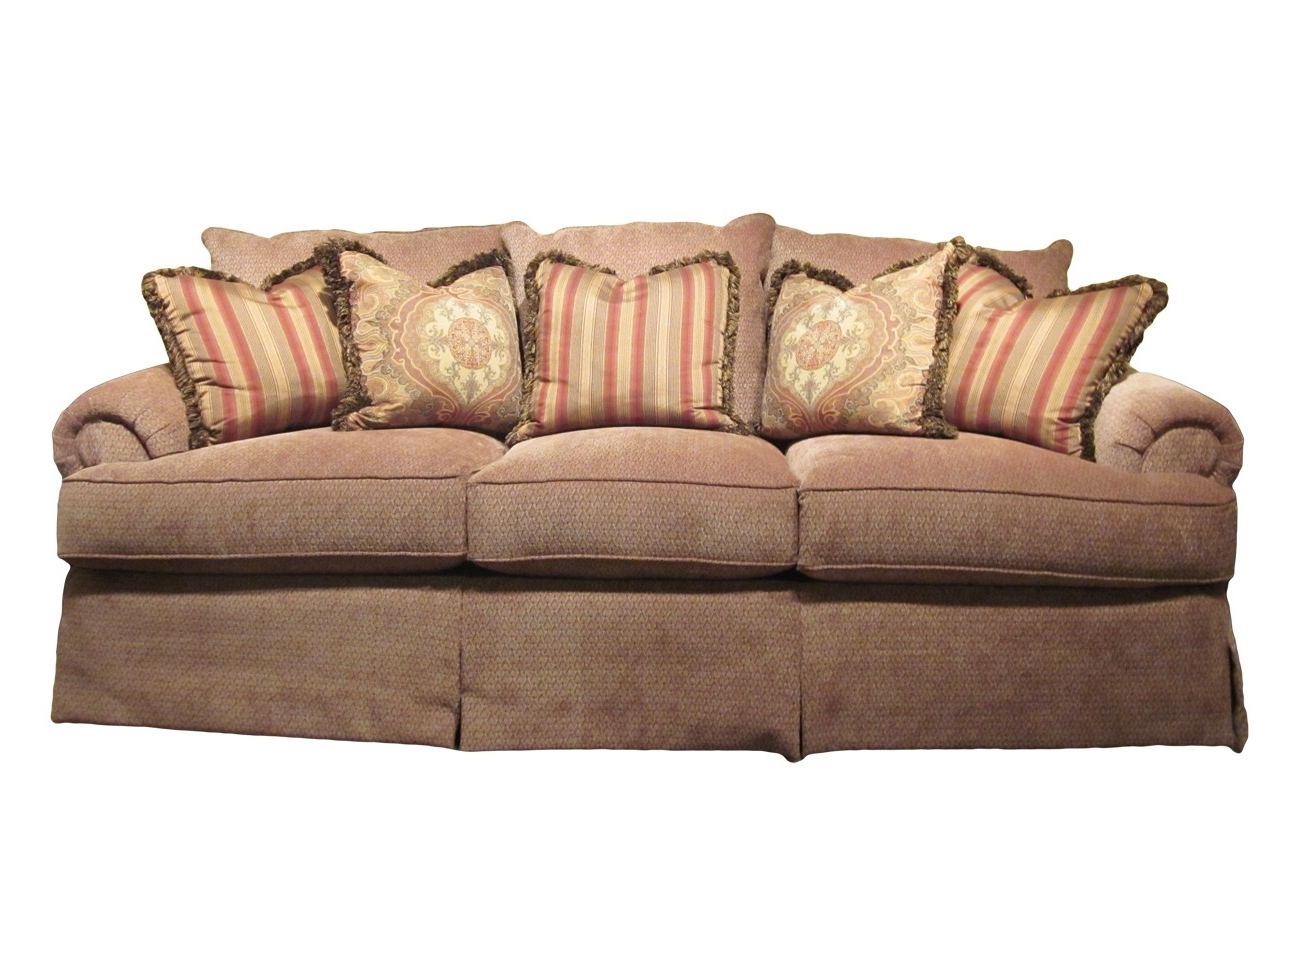 Well Liked Thomasville Sectional Sofas With Thomasville Sectional Sofas Design — Fabrizio Design (View 15 of 15)